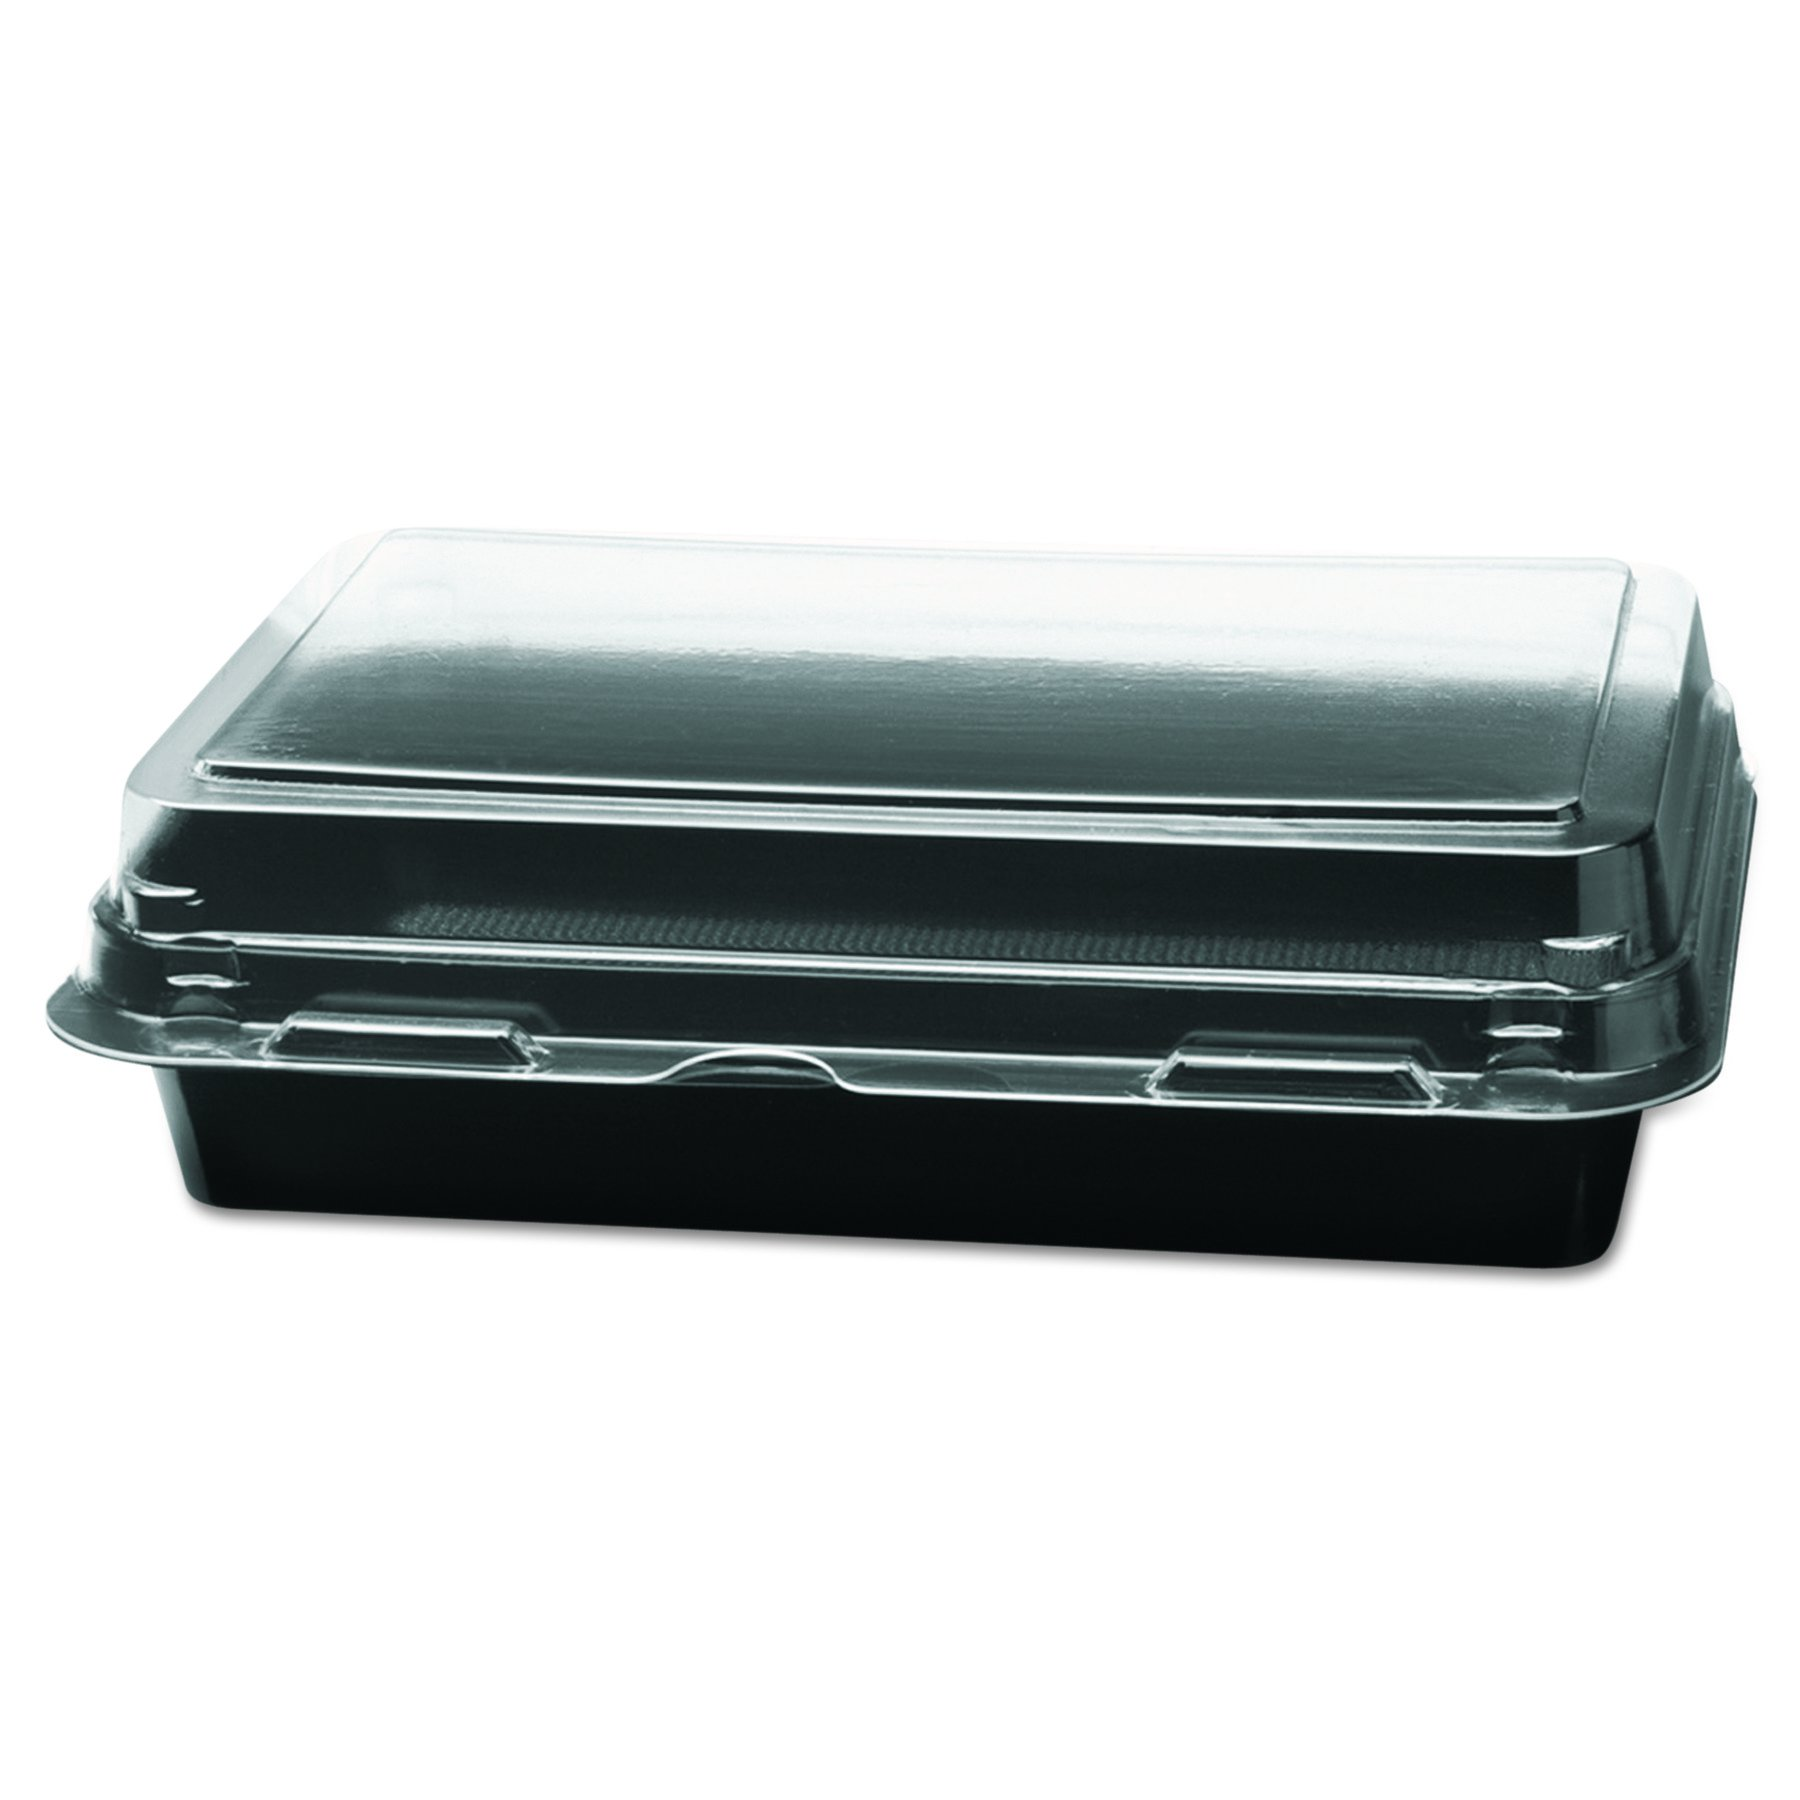 Solo 846612-PS94 8 in Black/Clear PS Plastic Hinged Container, 7.87 X 5.39 in (Case of 200)